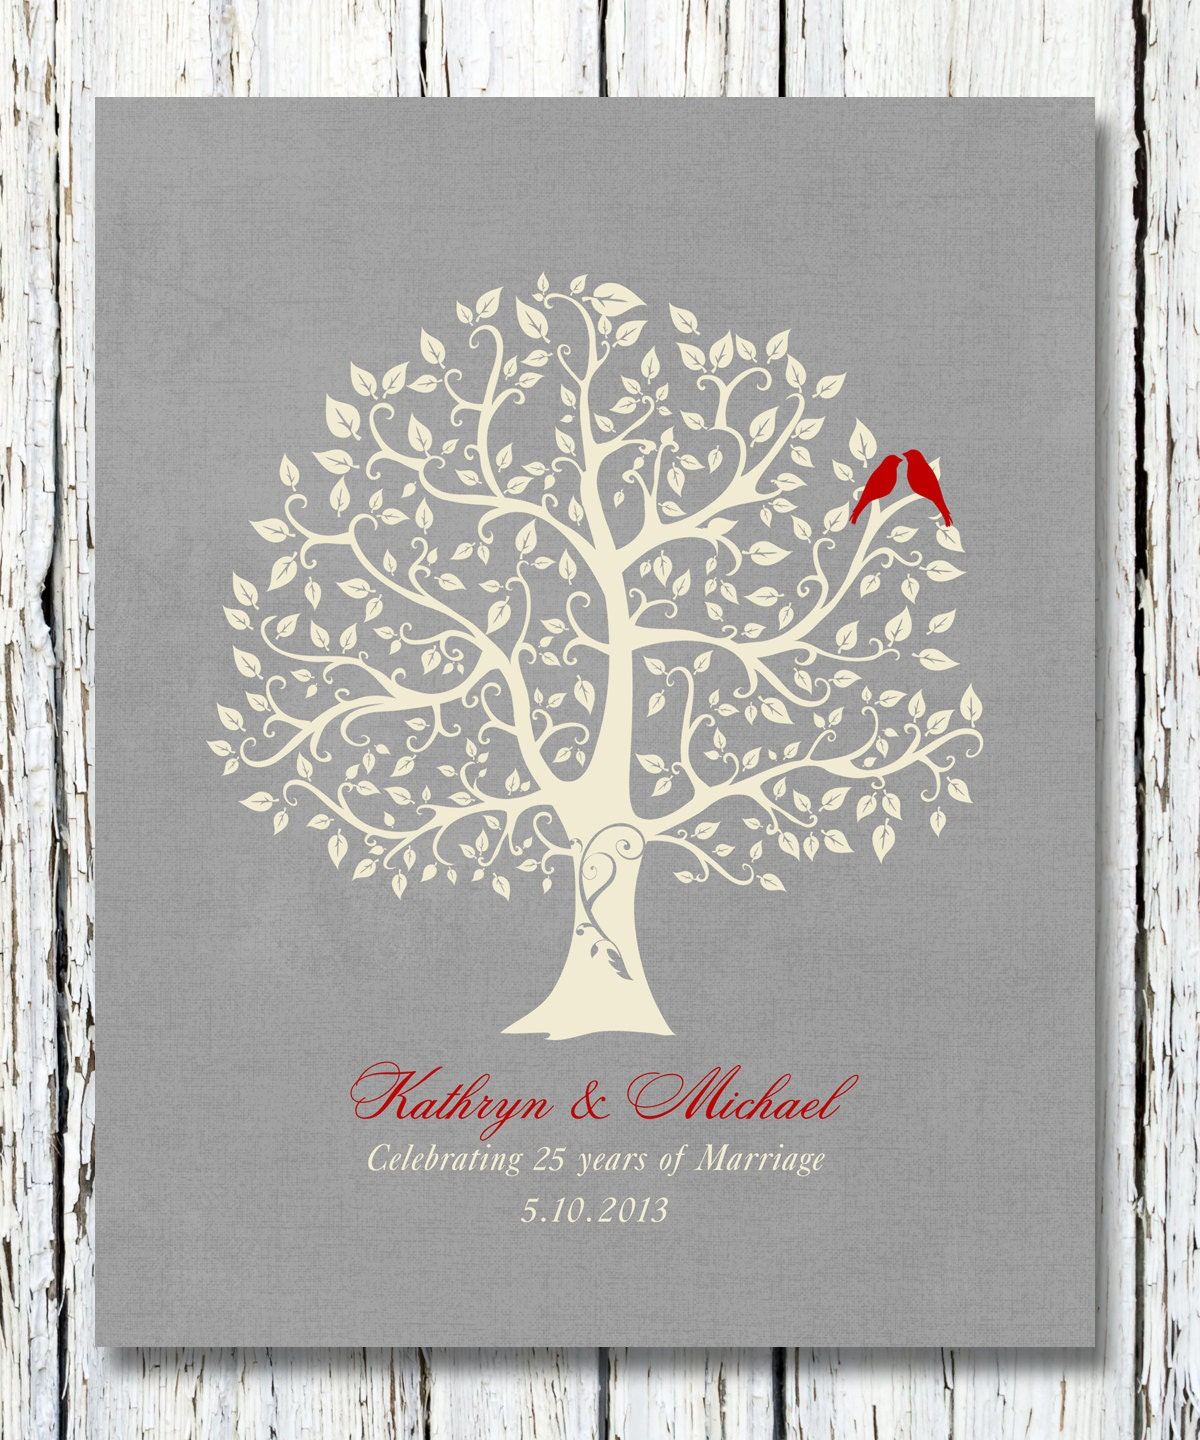 Special Wedding Anniversary Gift Ideas : Personalized 25th Silver Wedding Anniversary Gift Special